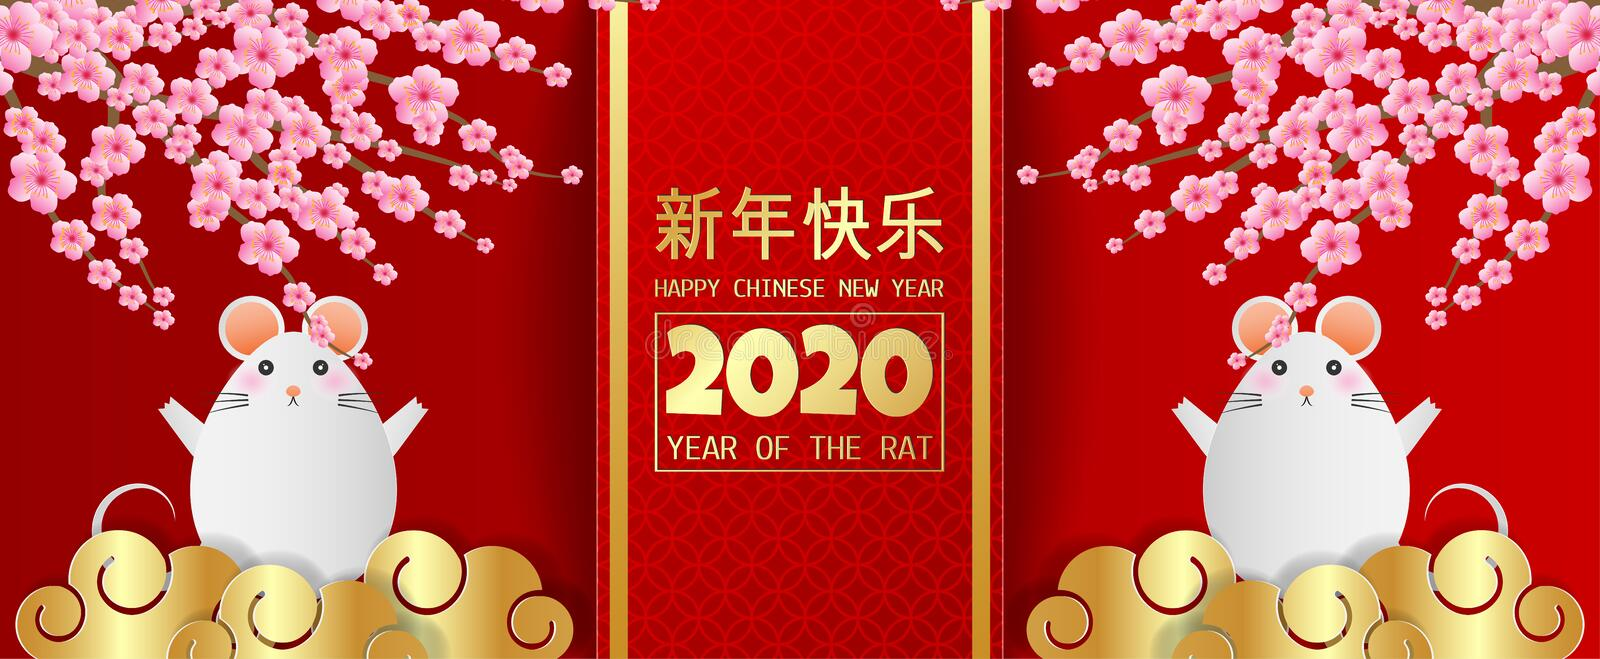 Happy chinese new year 2020 year of the rat greeting card with cute rat and cherry blossom on red background, Paper art style. Chinese translate : Happy royalty free stock image